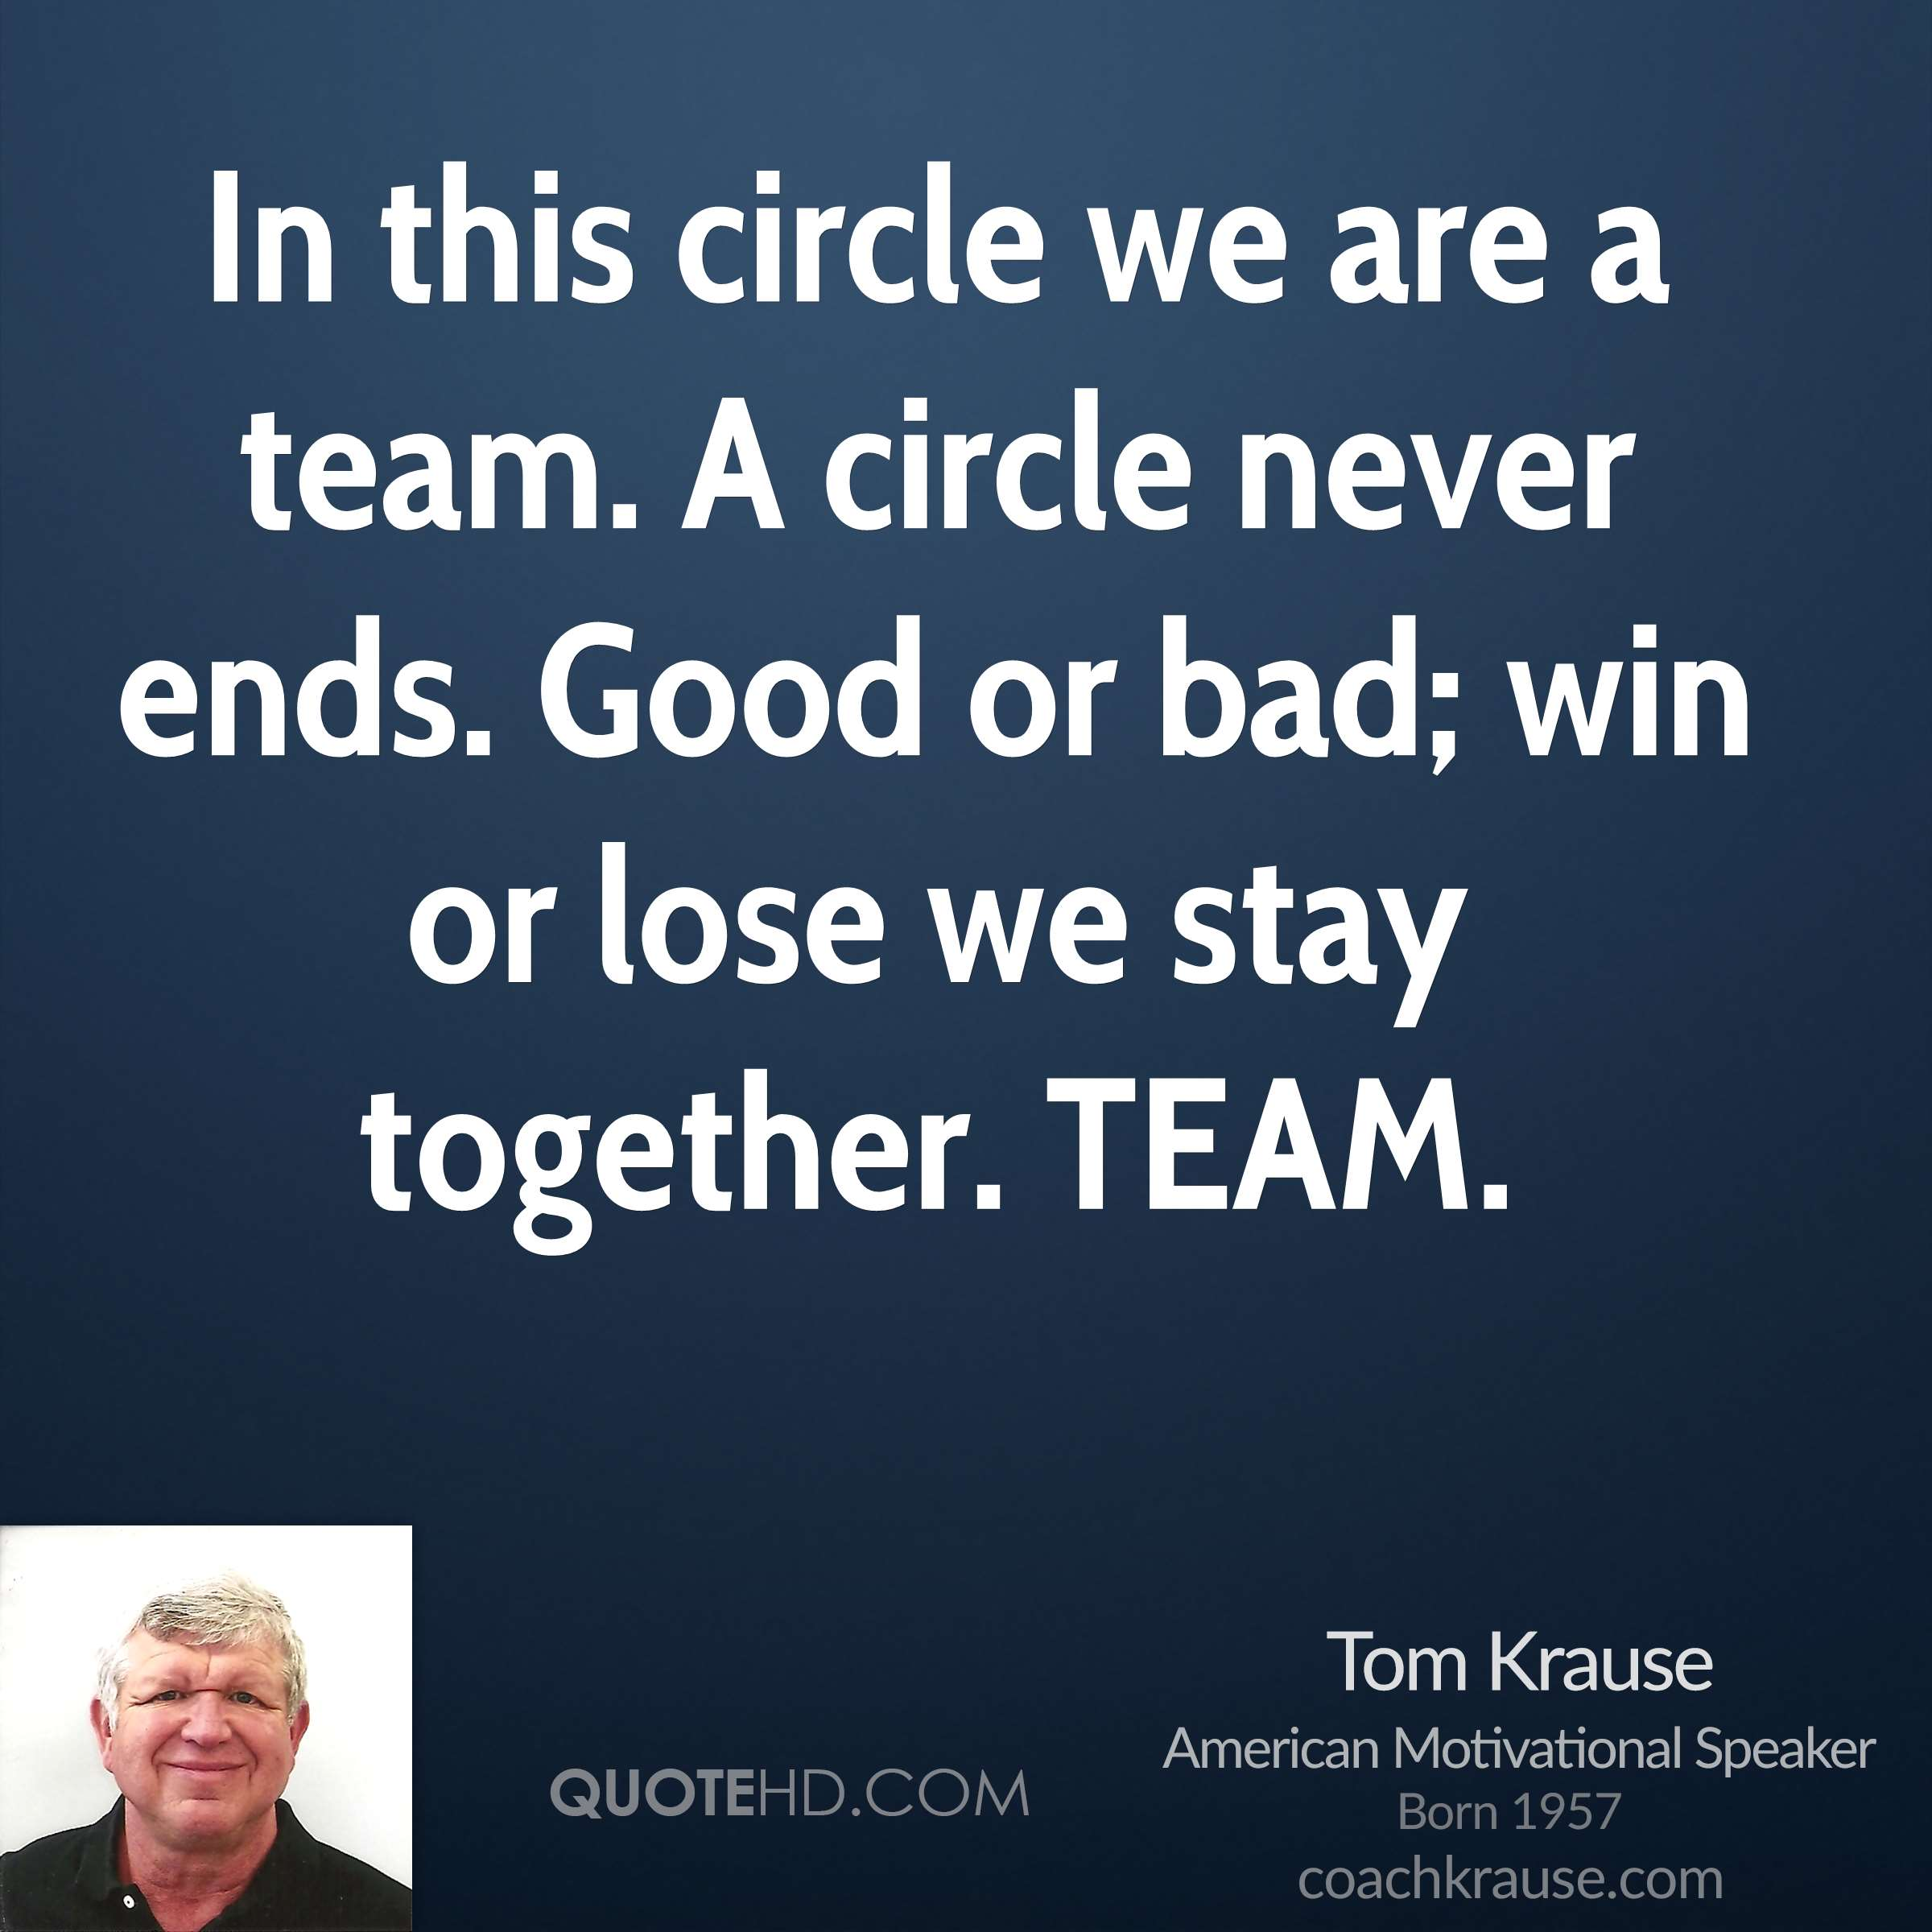 In this circle we are a team. A circle never ends. Good or bad; win or lose we stay together. TEAM.